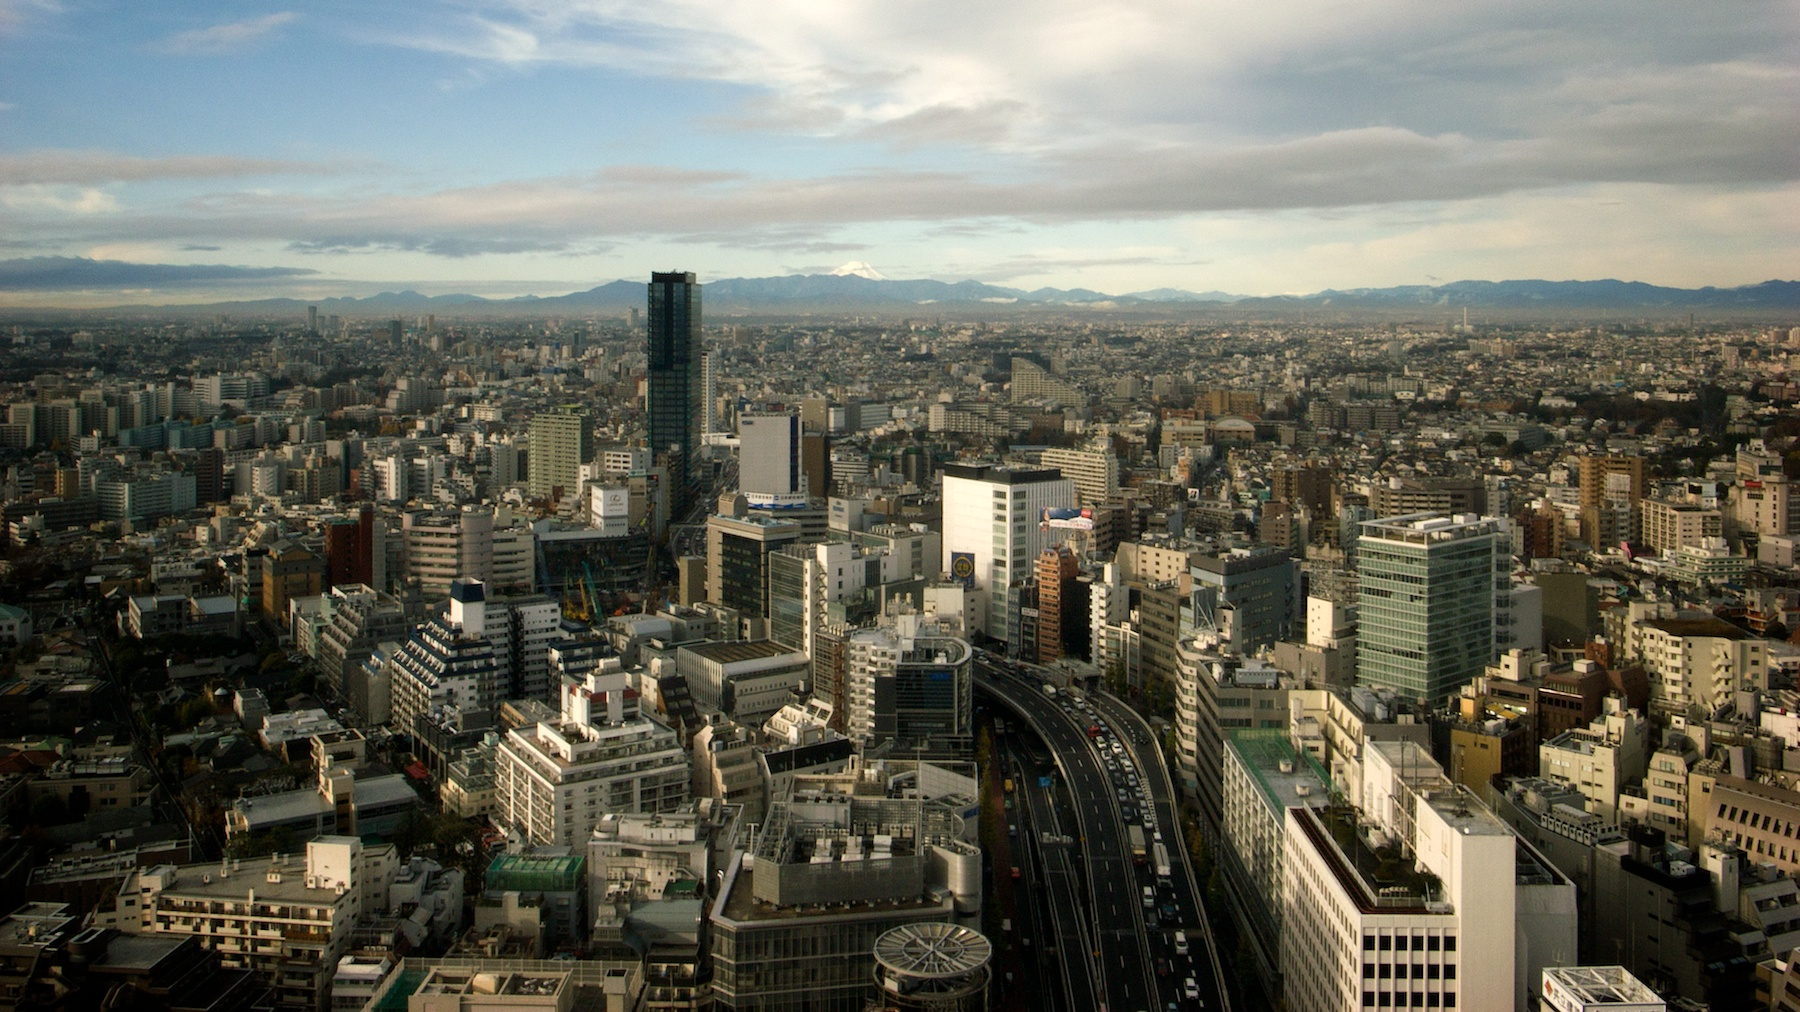 Photo: On a clear day in Tokyo, you can see Mt Fuji off in the distance.